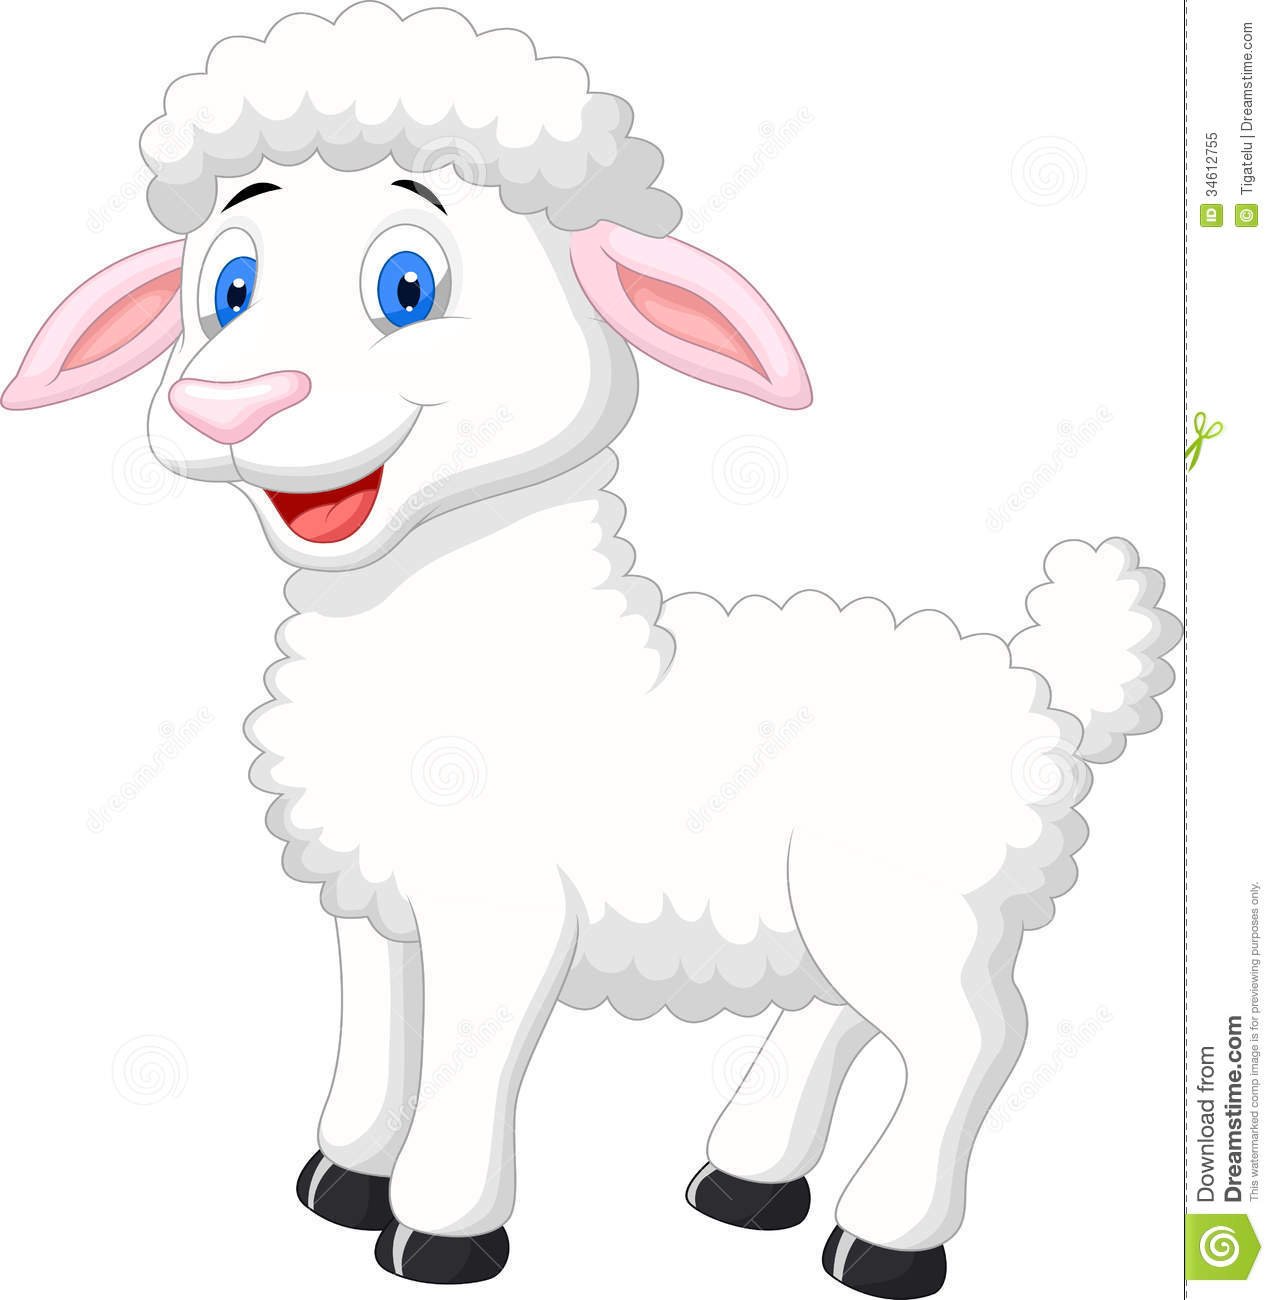 Cute Sheep Drawing Tumblr Cute Sheep Cartoon Stock Vector Illustration Of Comic